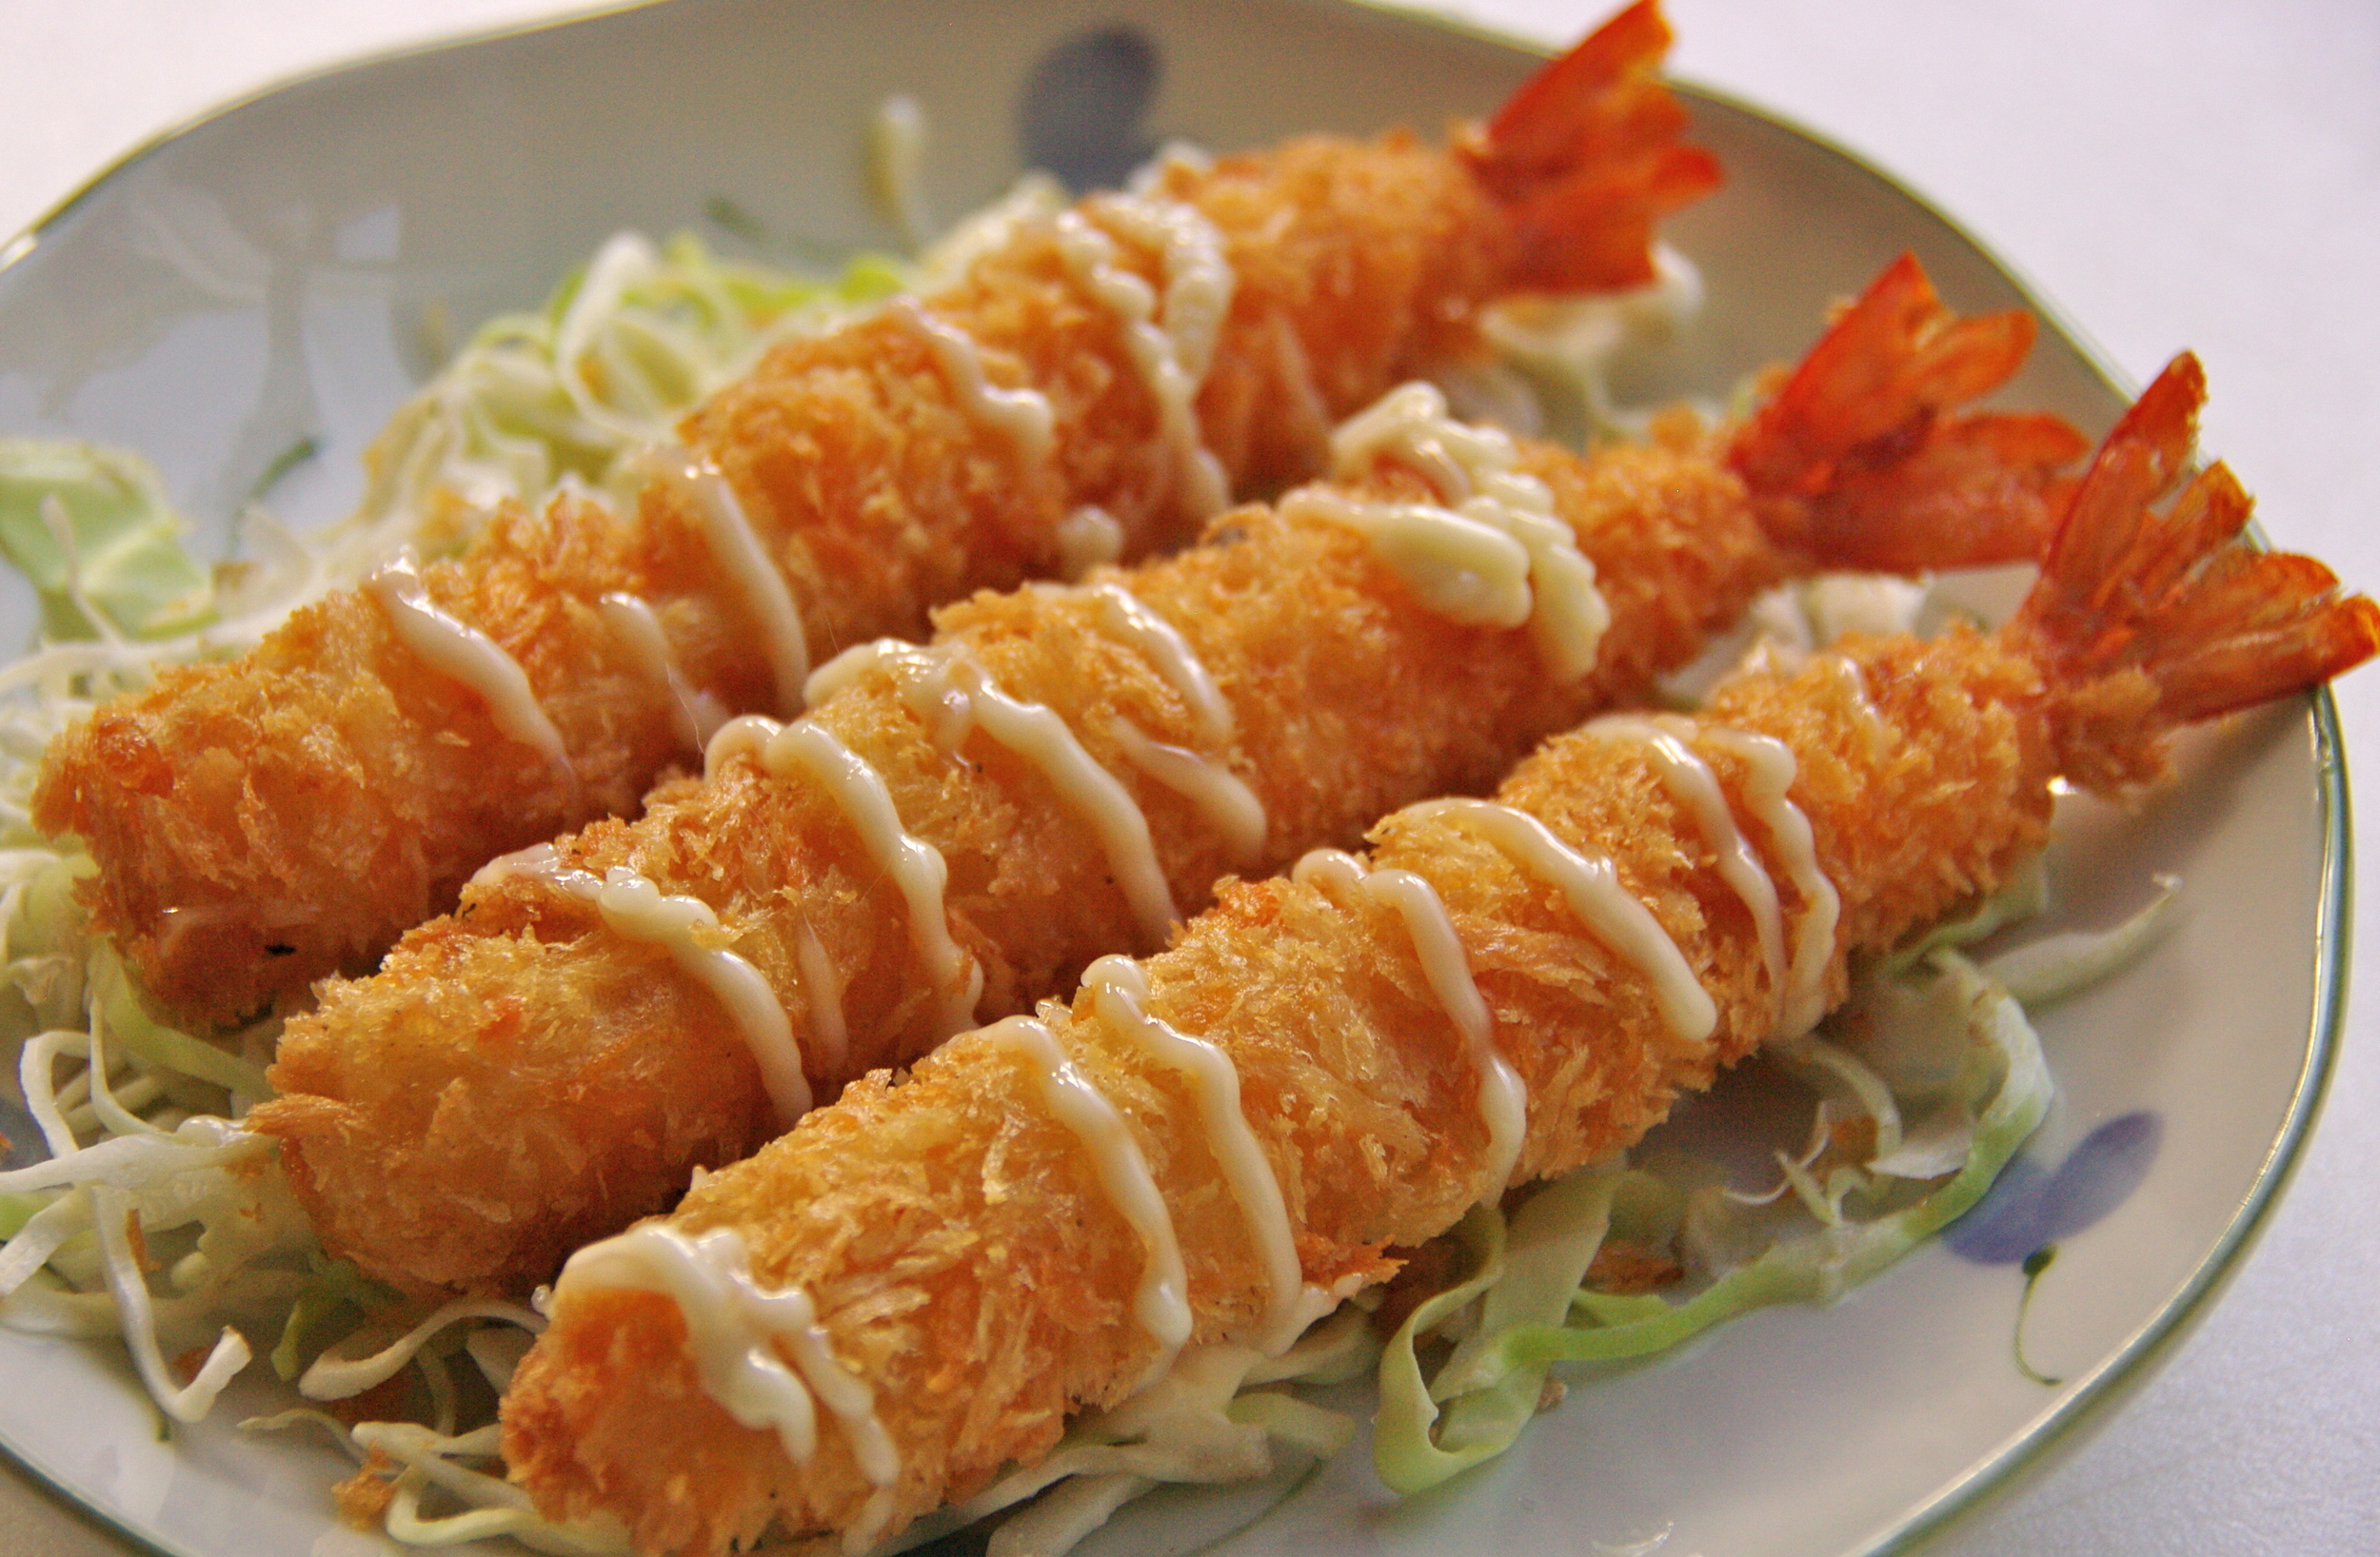 Crsipy Prawns - who can resist?